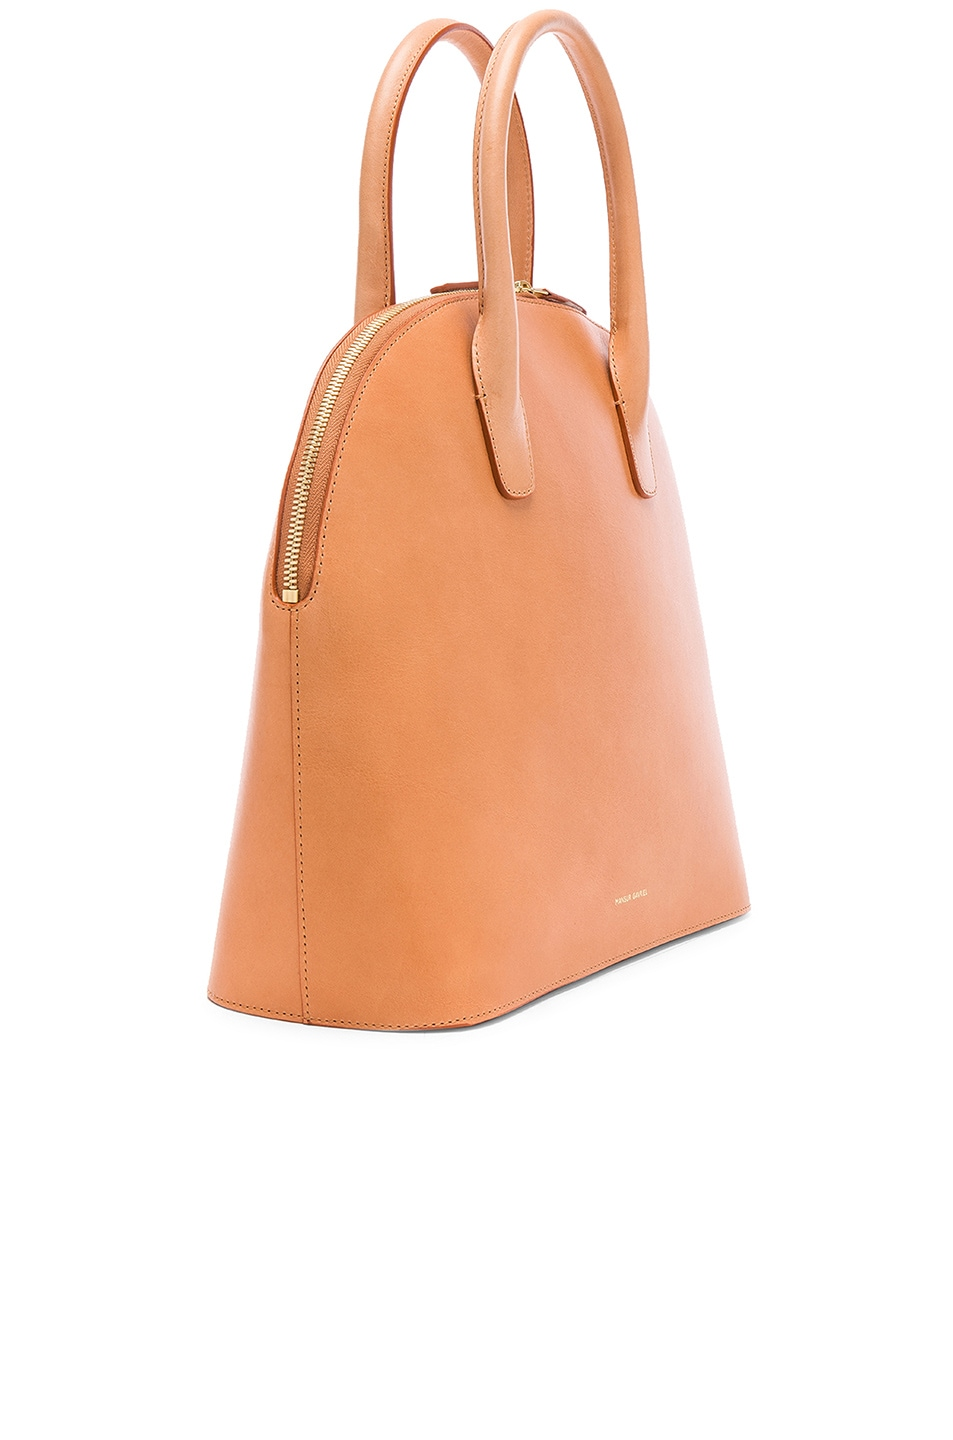 885d14a0bf0 Image 4 of Mansur Gavriel Top Handle Rounded Bag in Cammello   Rosa